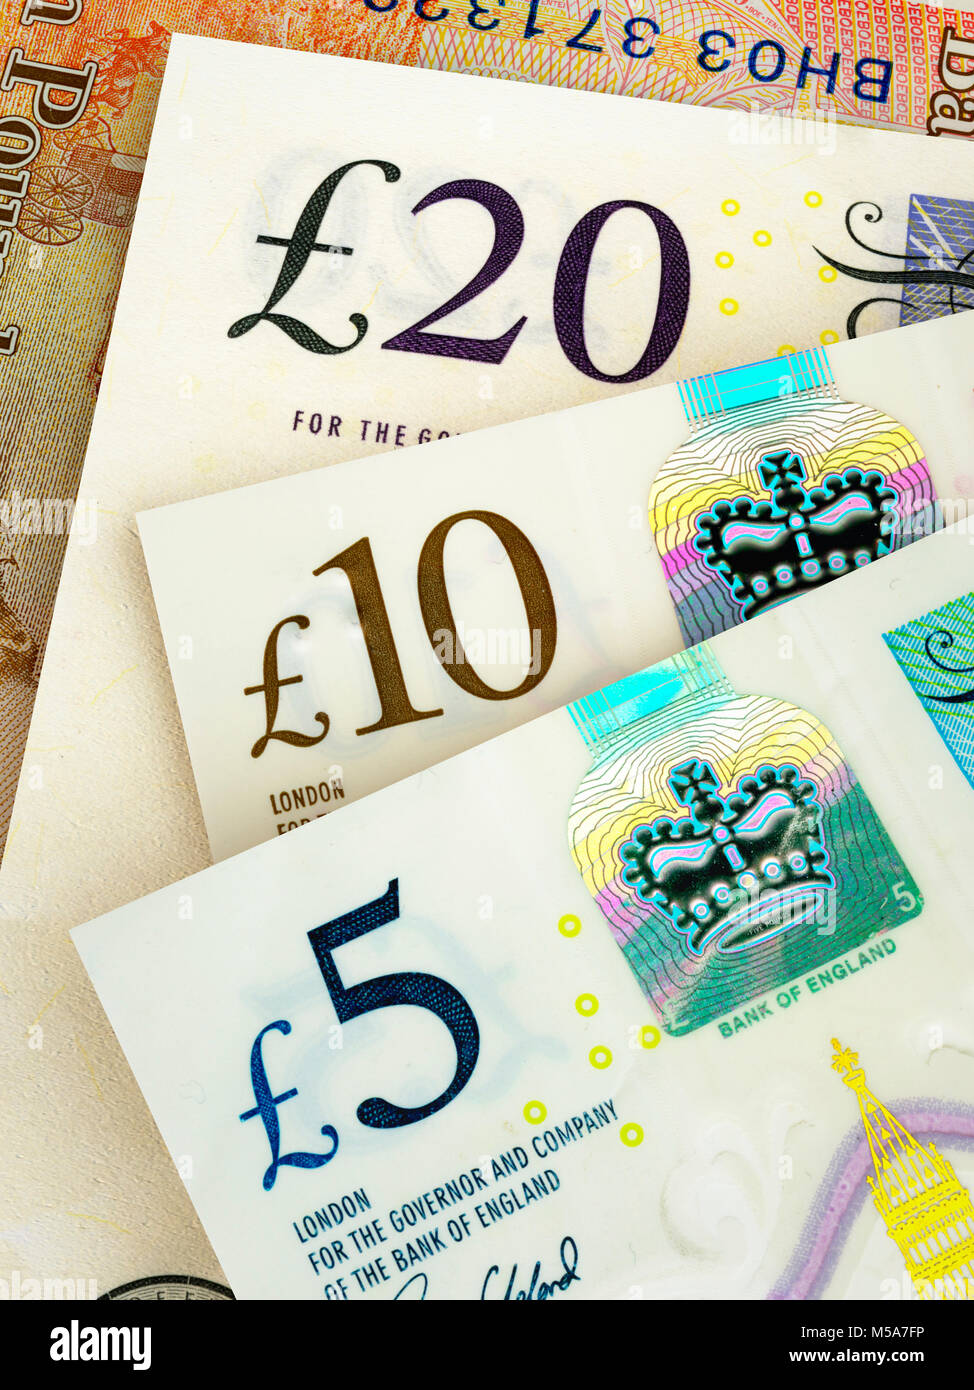 Sterling carta moneta - nuovo problema £20, £10, £5 pound note close up Immagini Stock